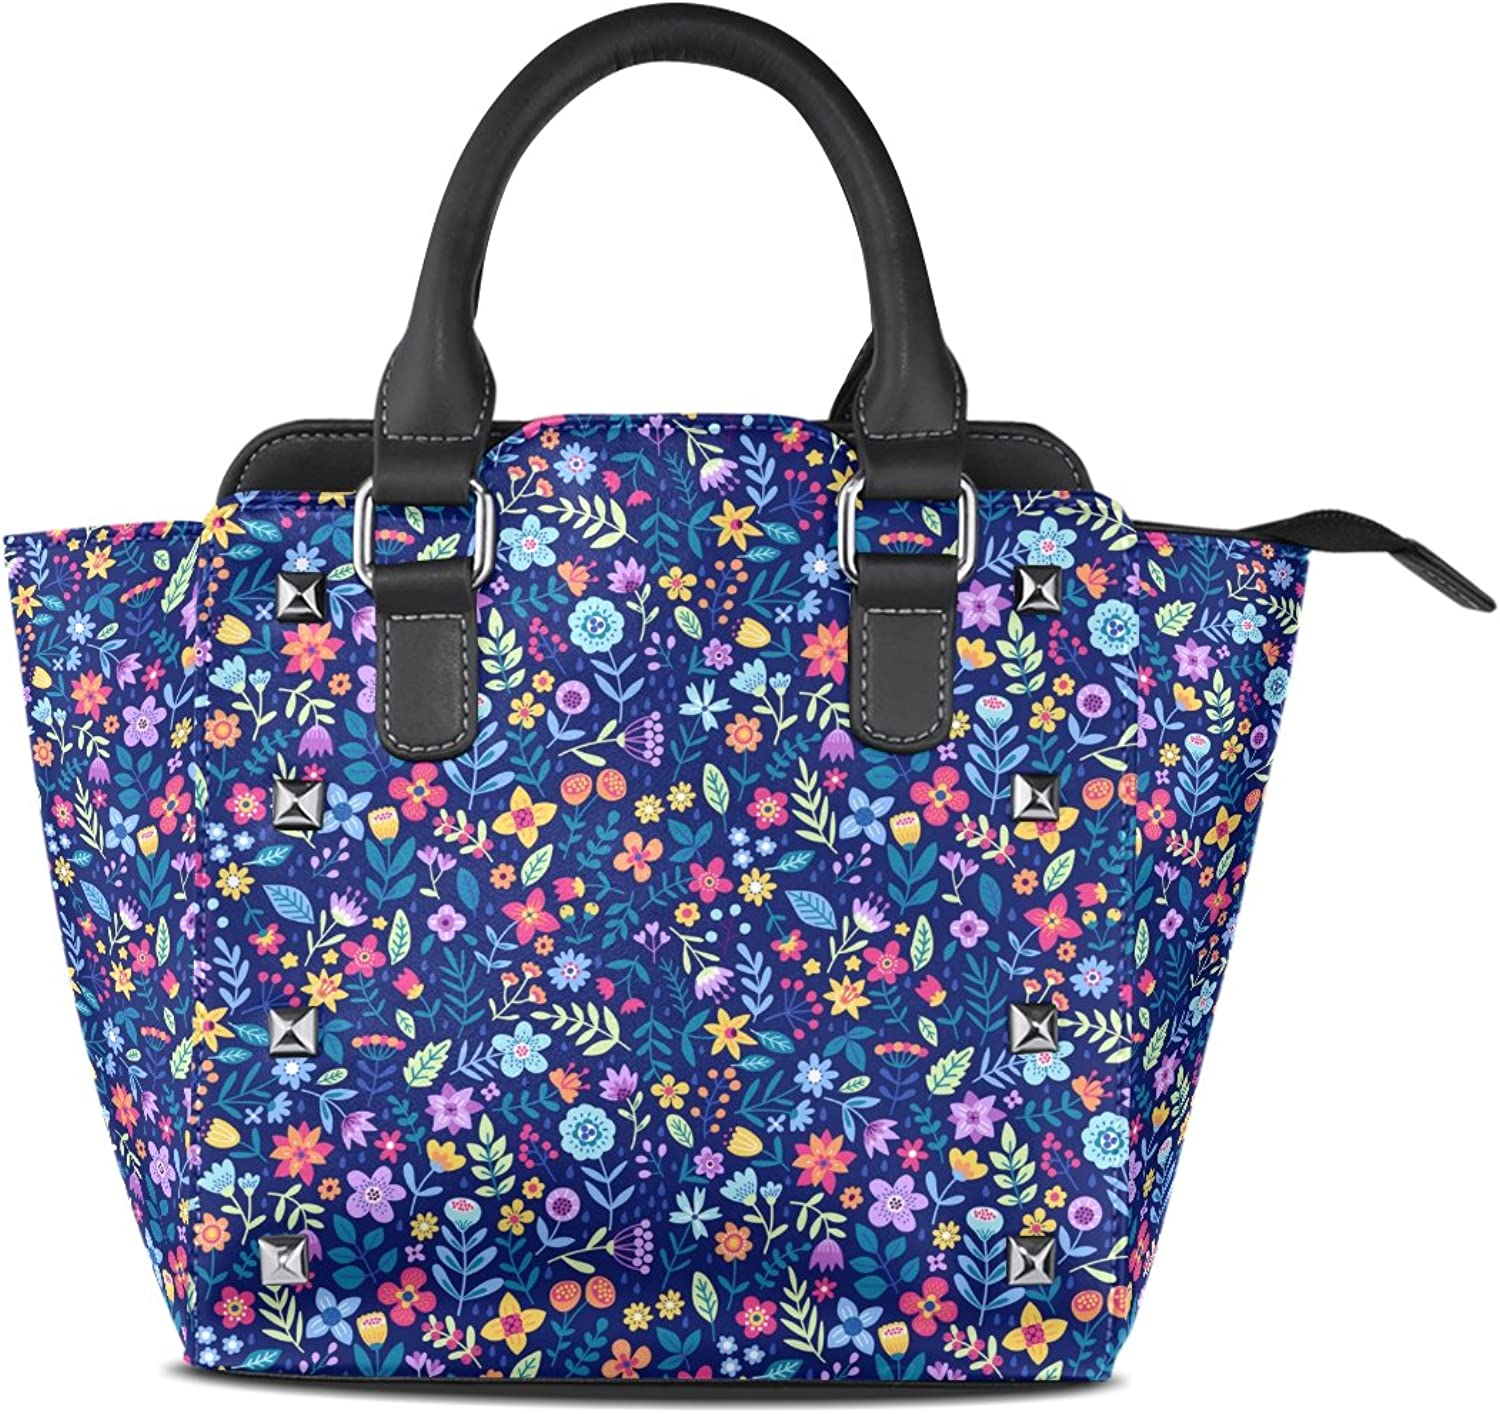 My Little Nest Women's Top Handle Satchel Handbag Cute Small colorful Flowers bluee Ladies PU Leather Shoulder Bag Crossbody Bag